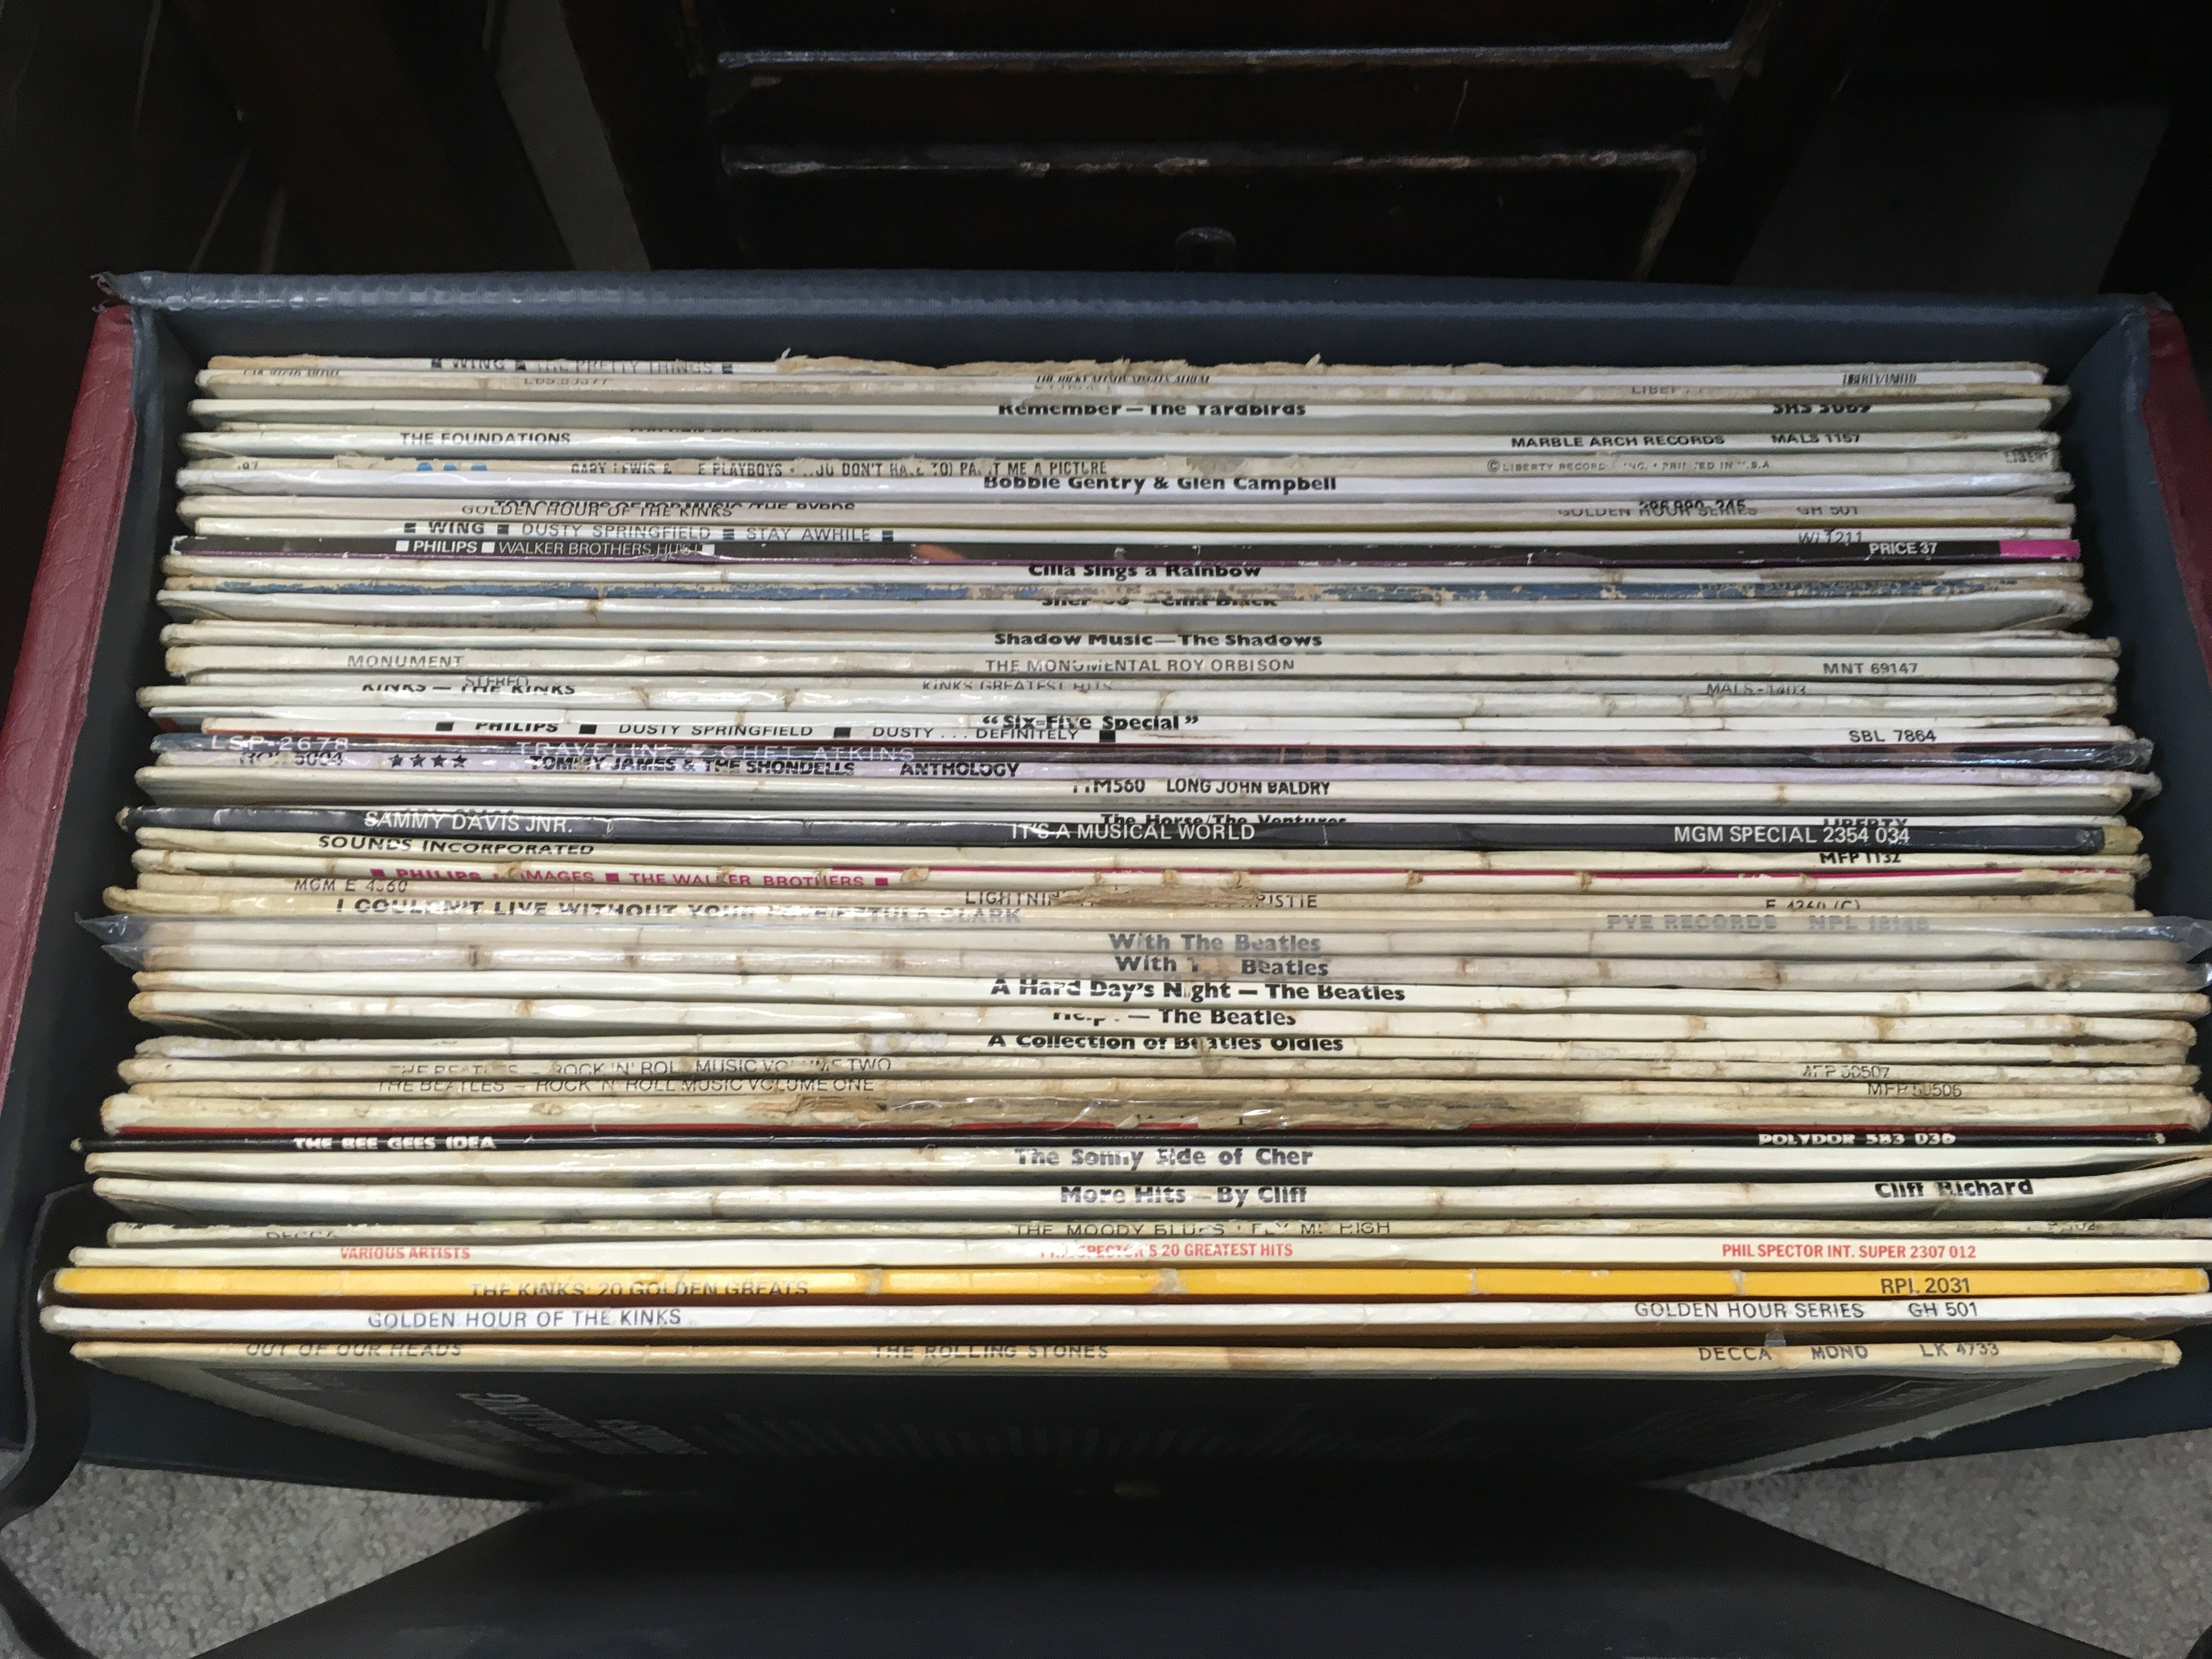 A record case of LPs by artists from the 1960s inc